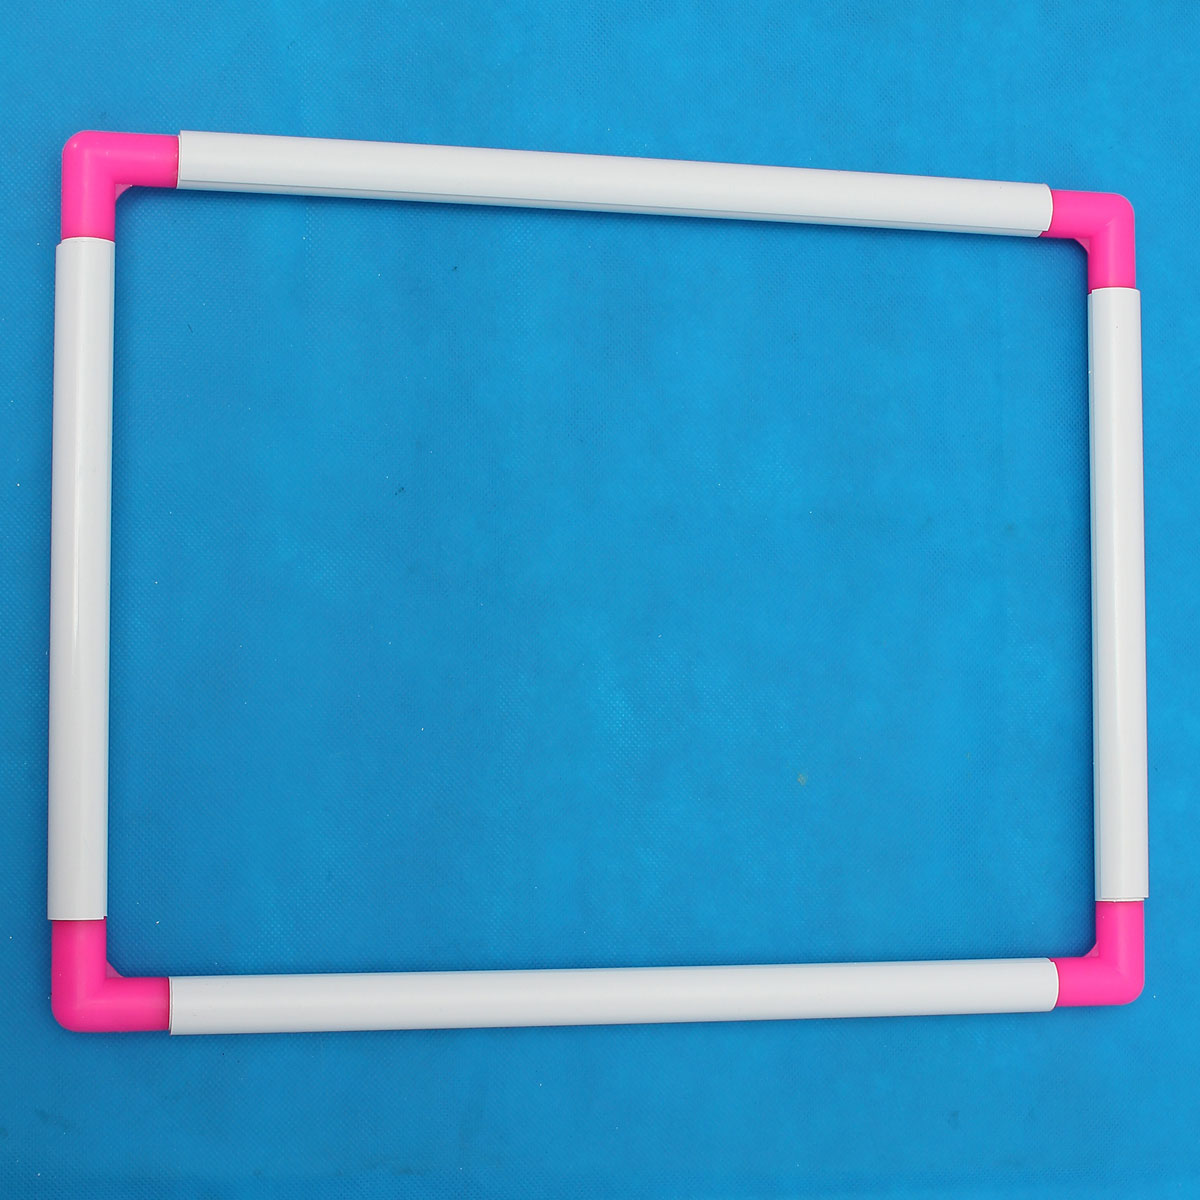 Universal Plastic Embroidery Frame Cross Stitch Hoop Craft